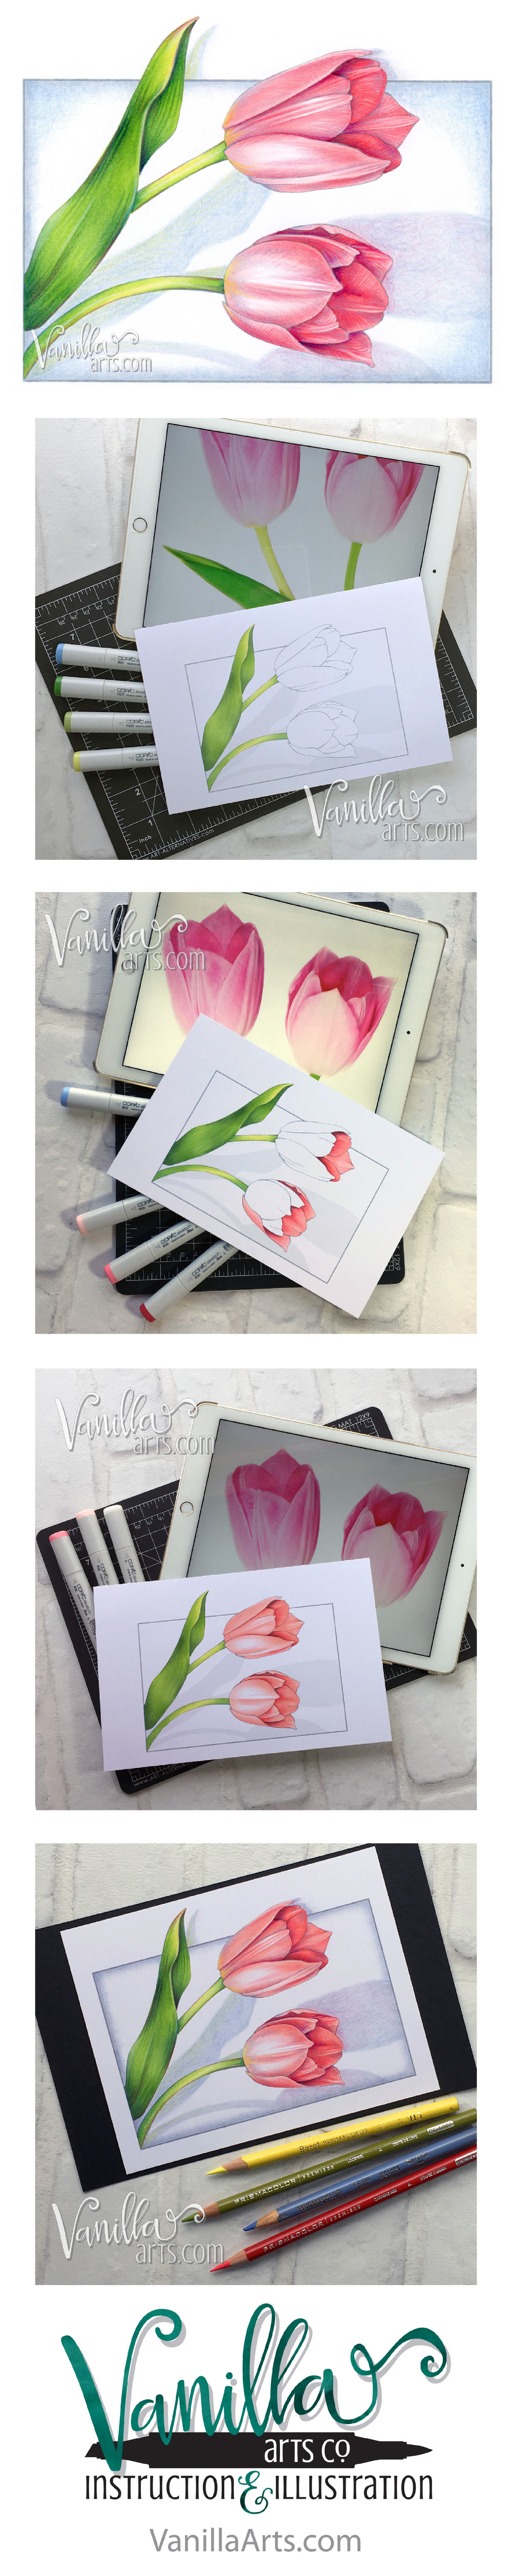 """Two Tulips"" week 11 project for Marker Painting Foundations online Copic course for beginners. We start with simple blending and work our way towards realism! Begin the course anytime, work at your own pace. 